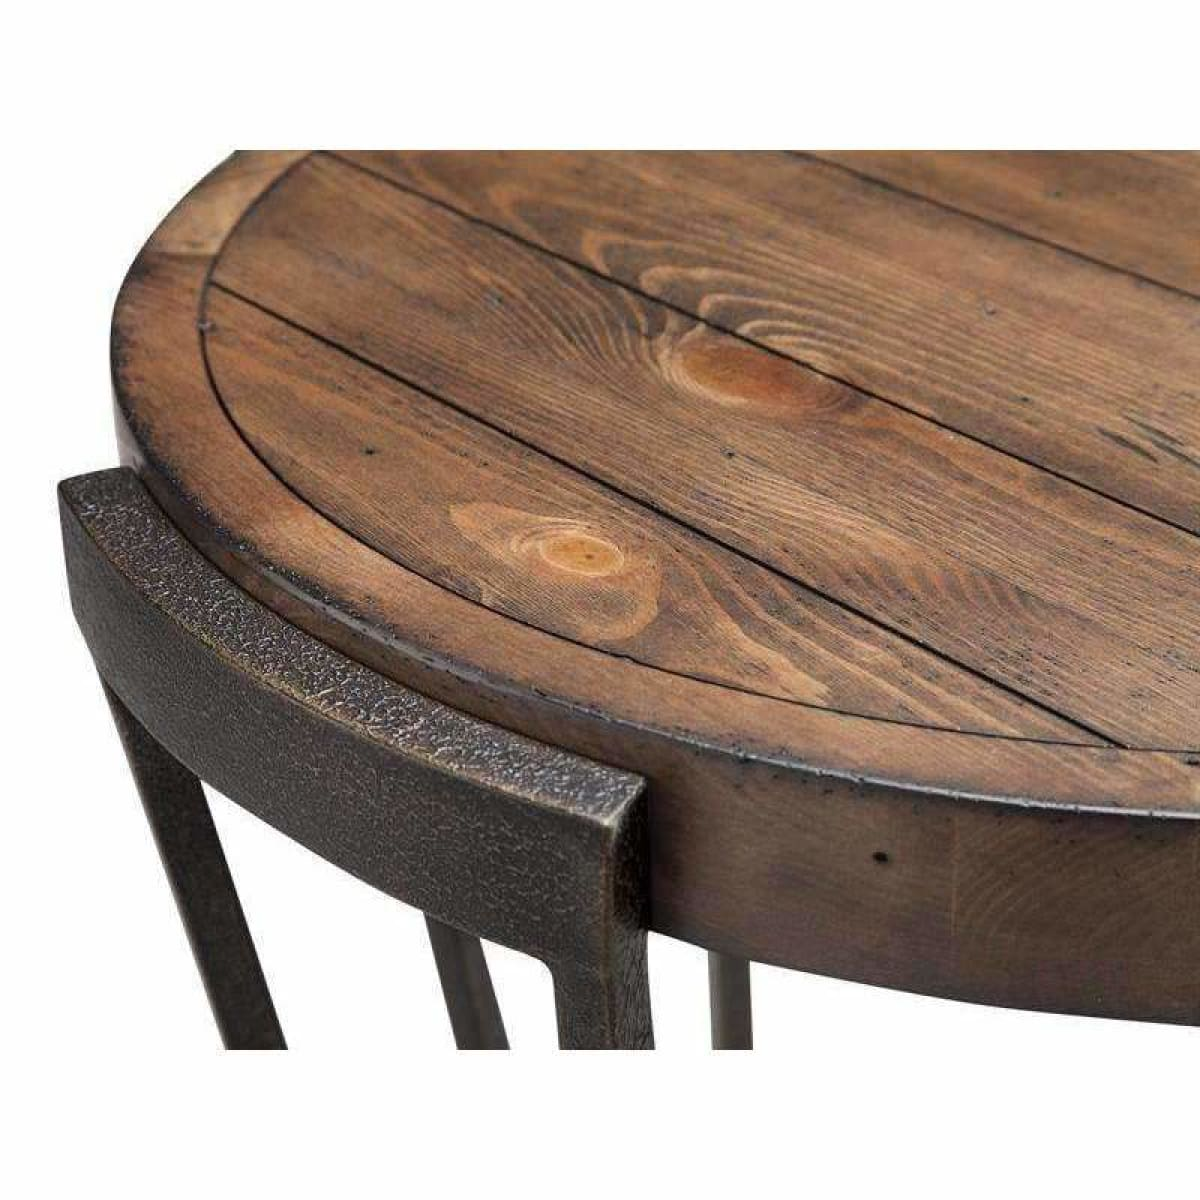 Yukon Round Cocktail Table (w/ Casters) - COFFEE TABLE